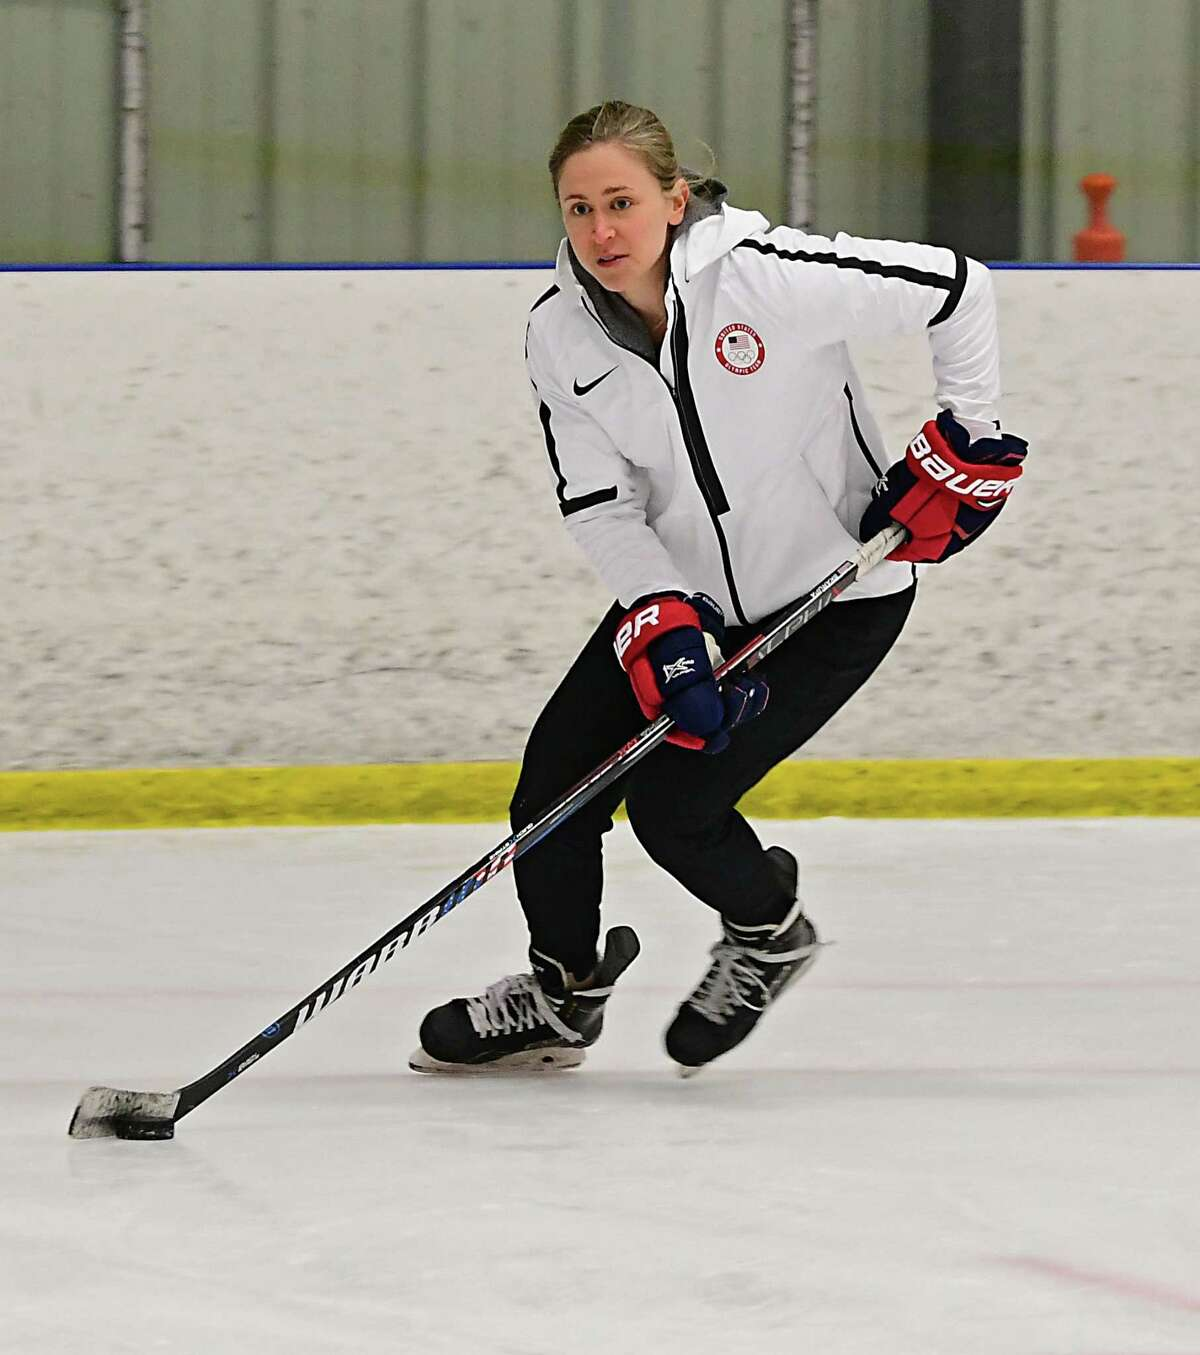 Haley Skarupa, a member of the 2018 U.S. gold medal-winning womenA?•s hockey team, hosts a clinic with Clifton Park-based CP Dynamo on Thursday, April 25, 2019 in Clifton Park, N.Y. (Lori Van Buren/Times Union)